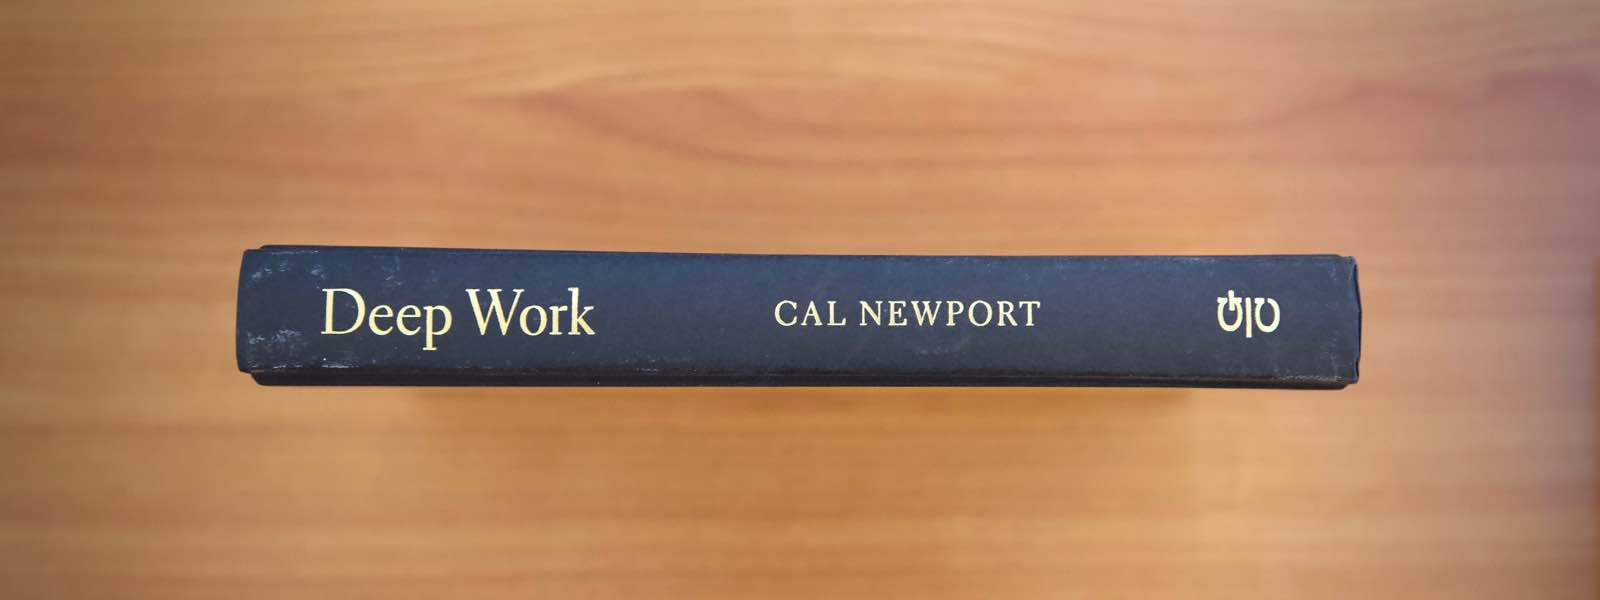 Deep Work Book Photo